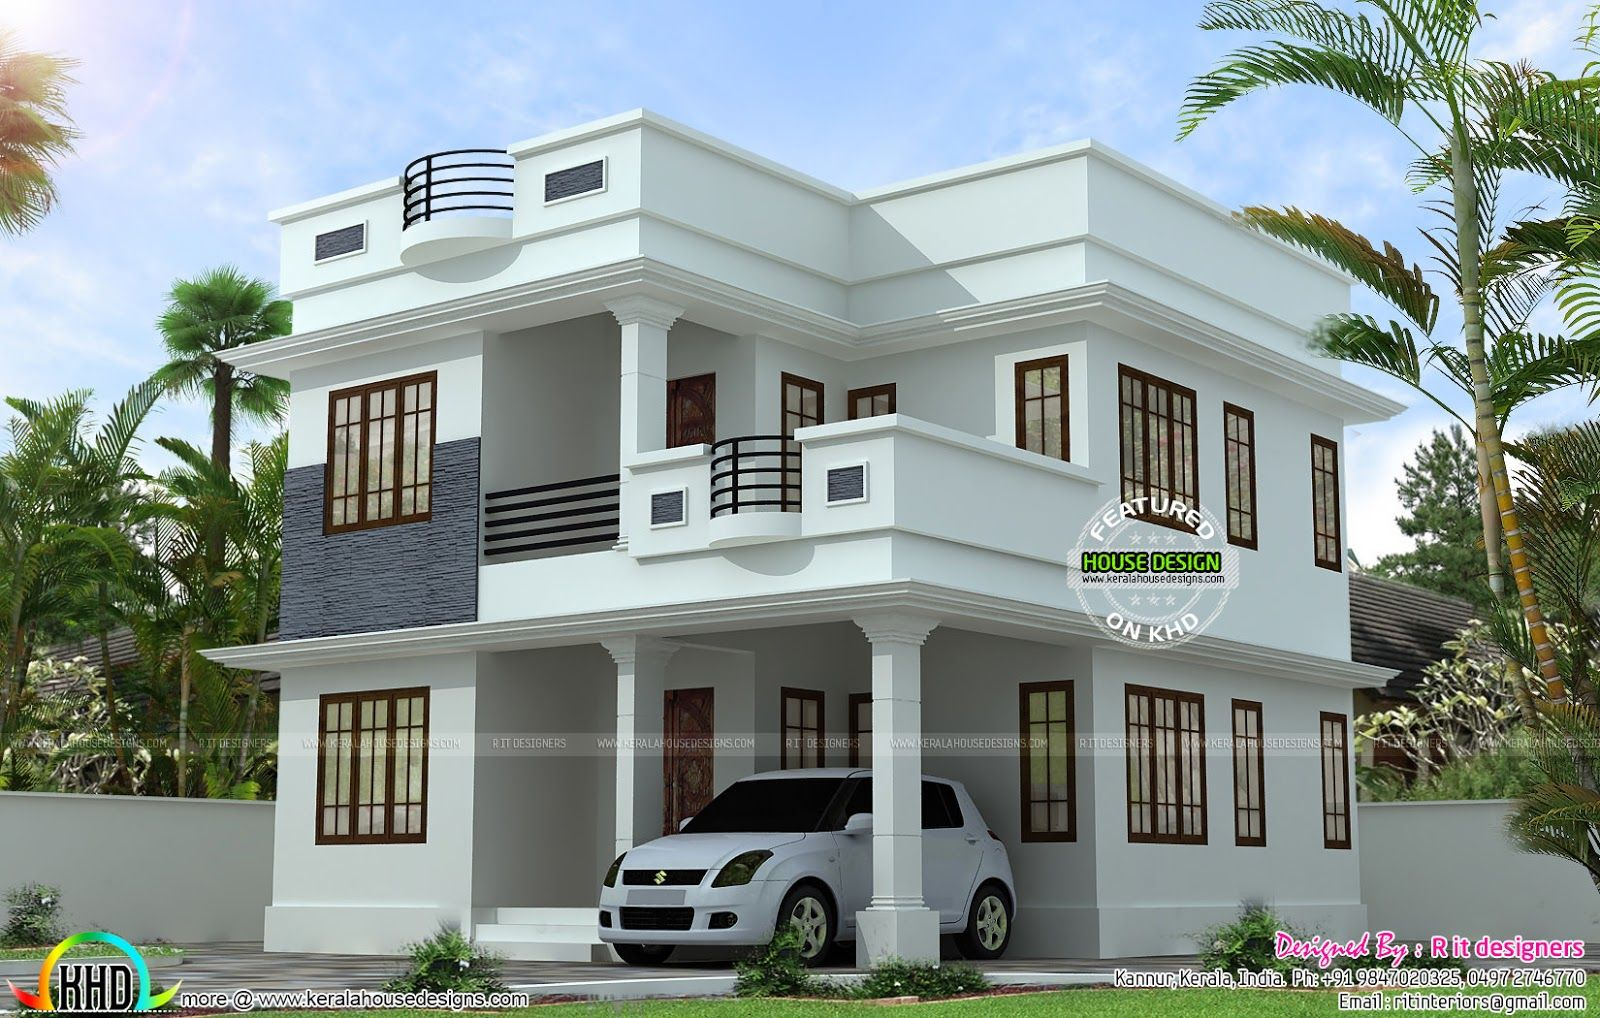 Home Design Decor In 2019 Kerala House Design Bungalow